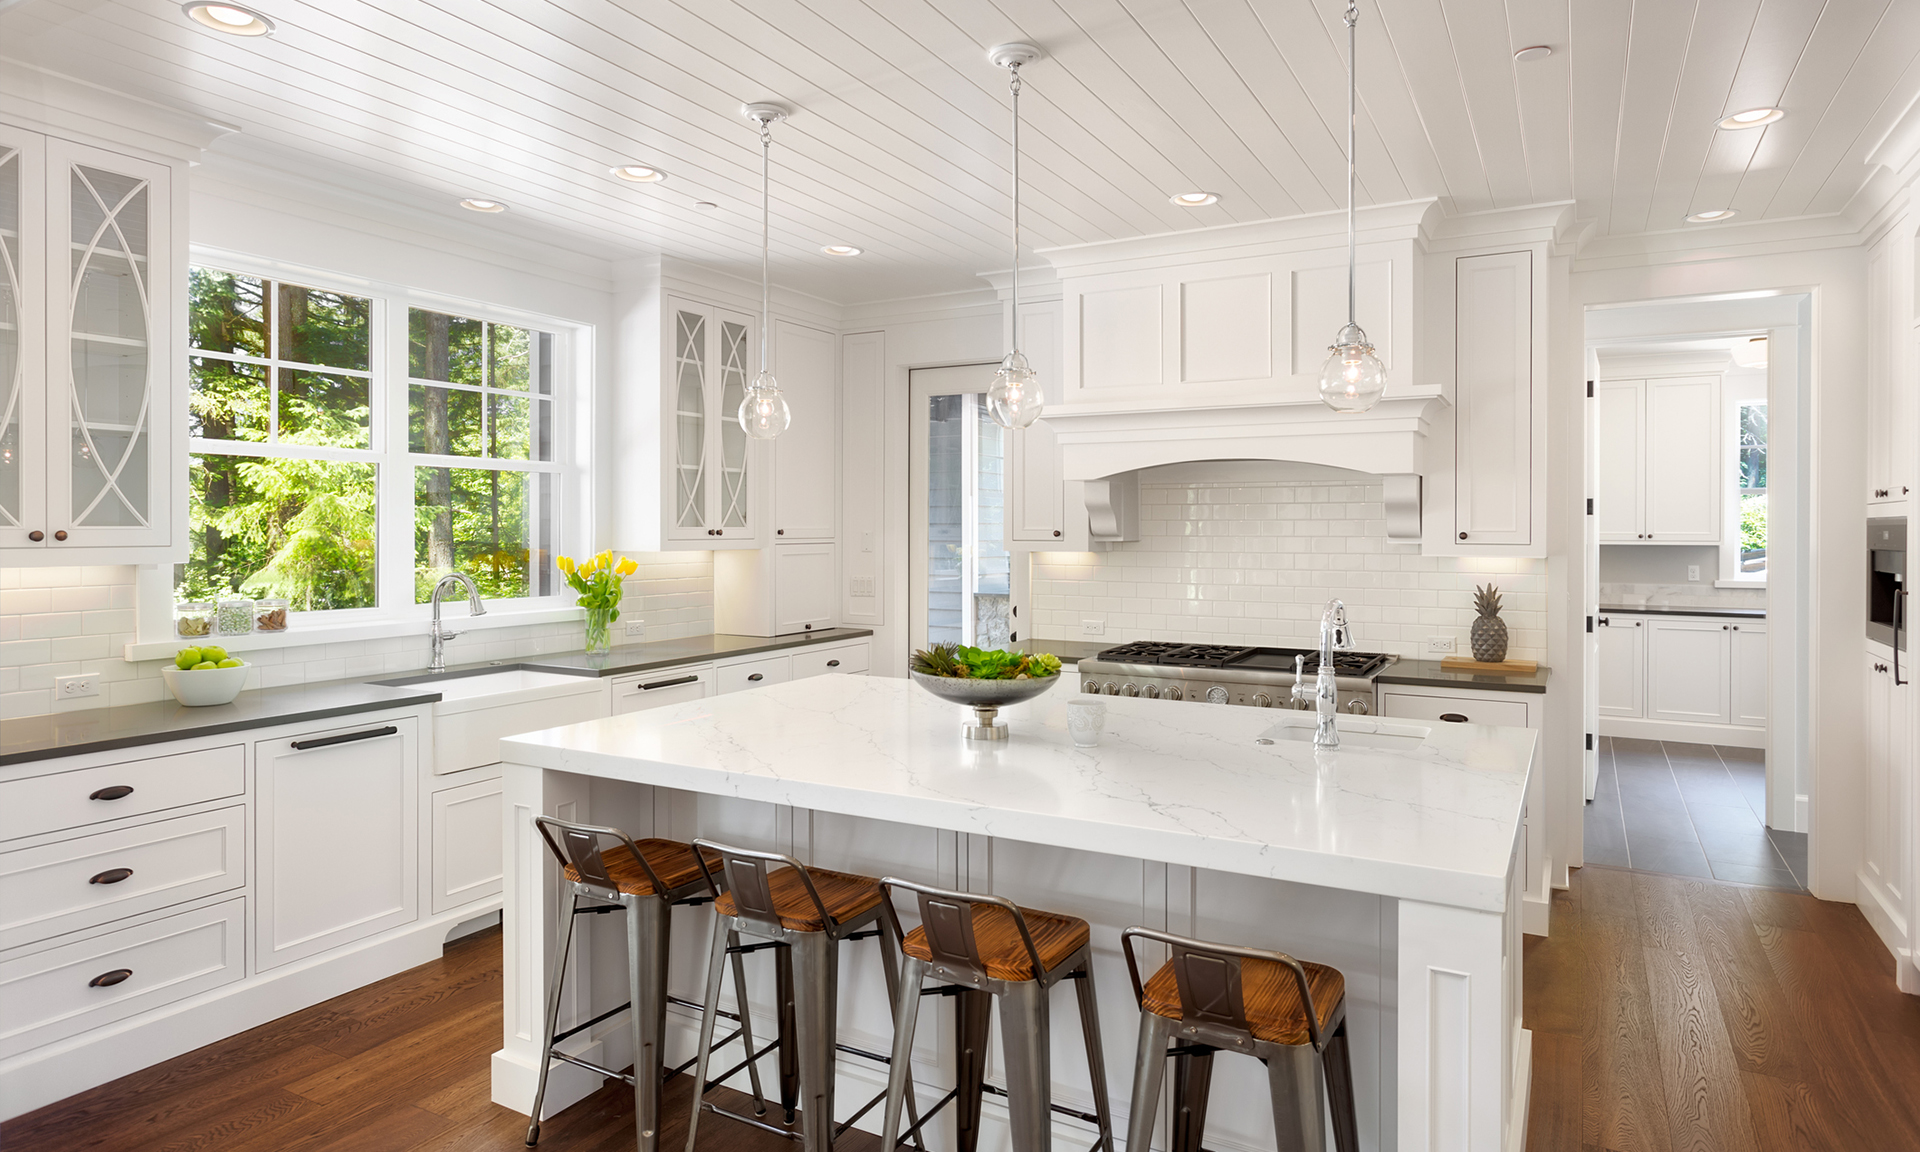 What Should You Know About Fitted Kitchen Prices?